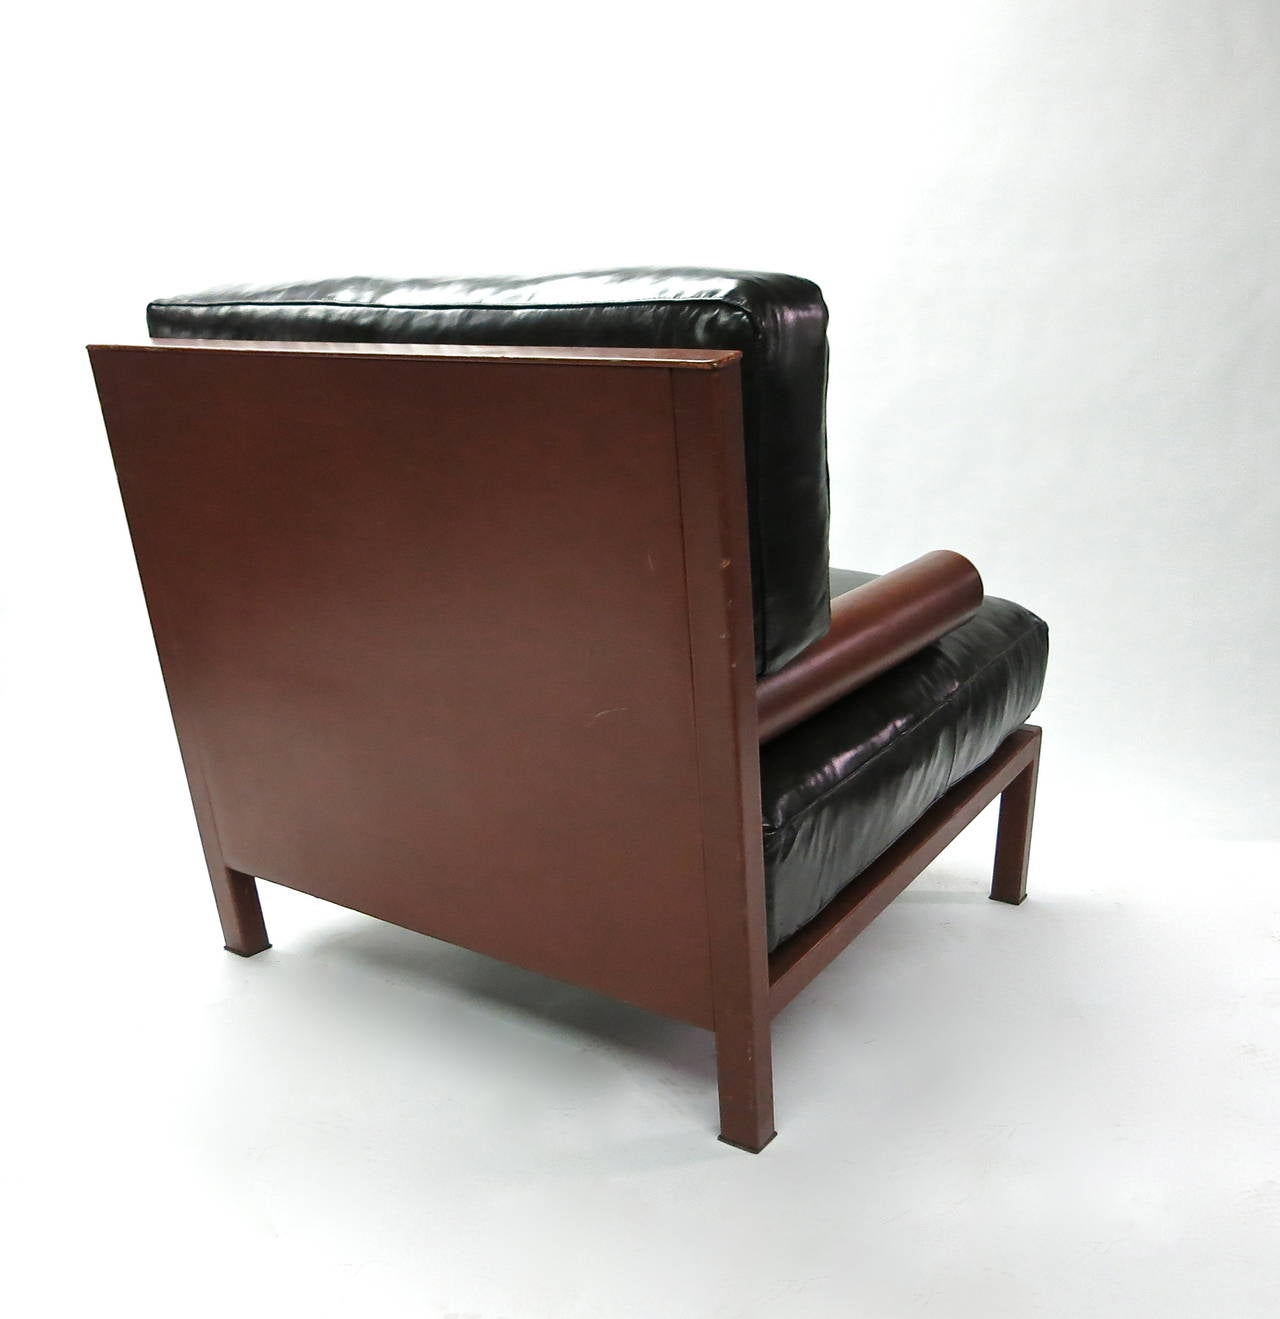 Oversized Chair Designed by Antonio Citterio for B&B Italia, Made in Italy, 1987 For Sale 2